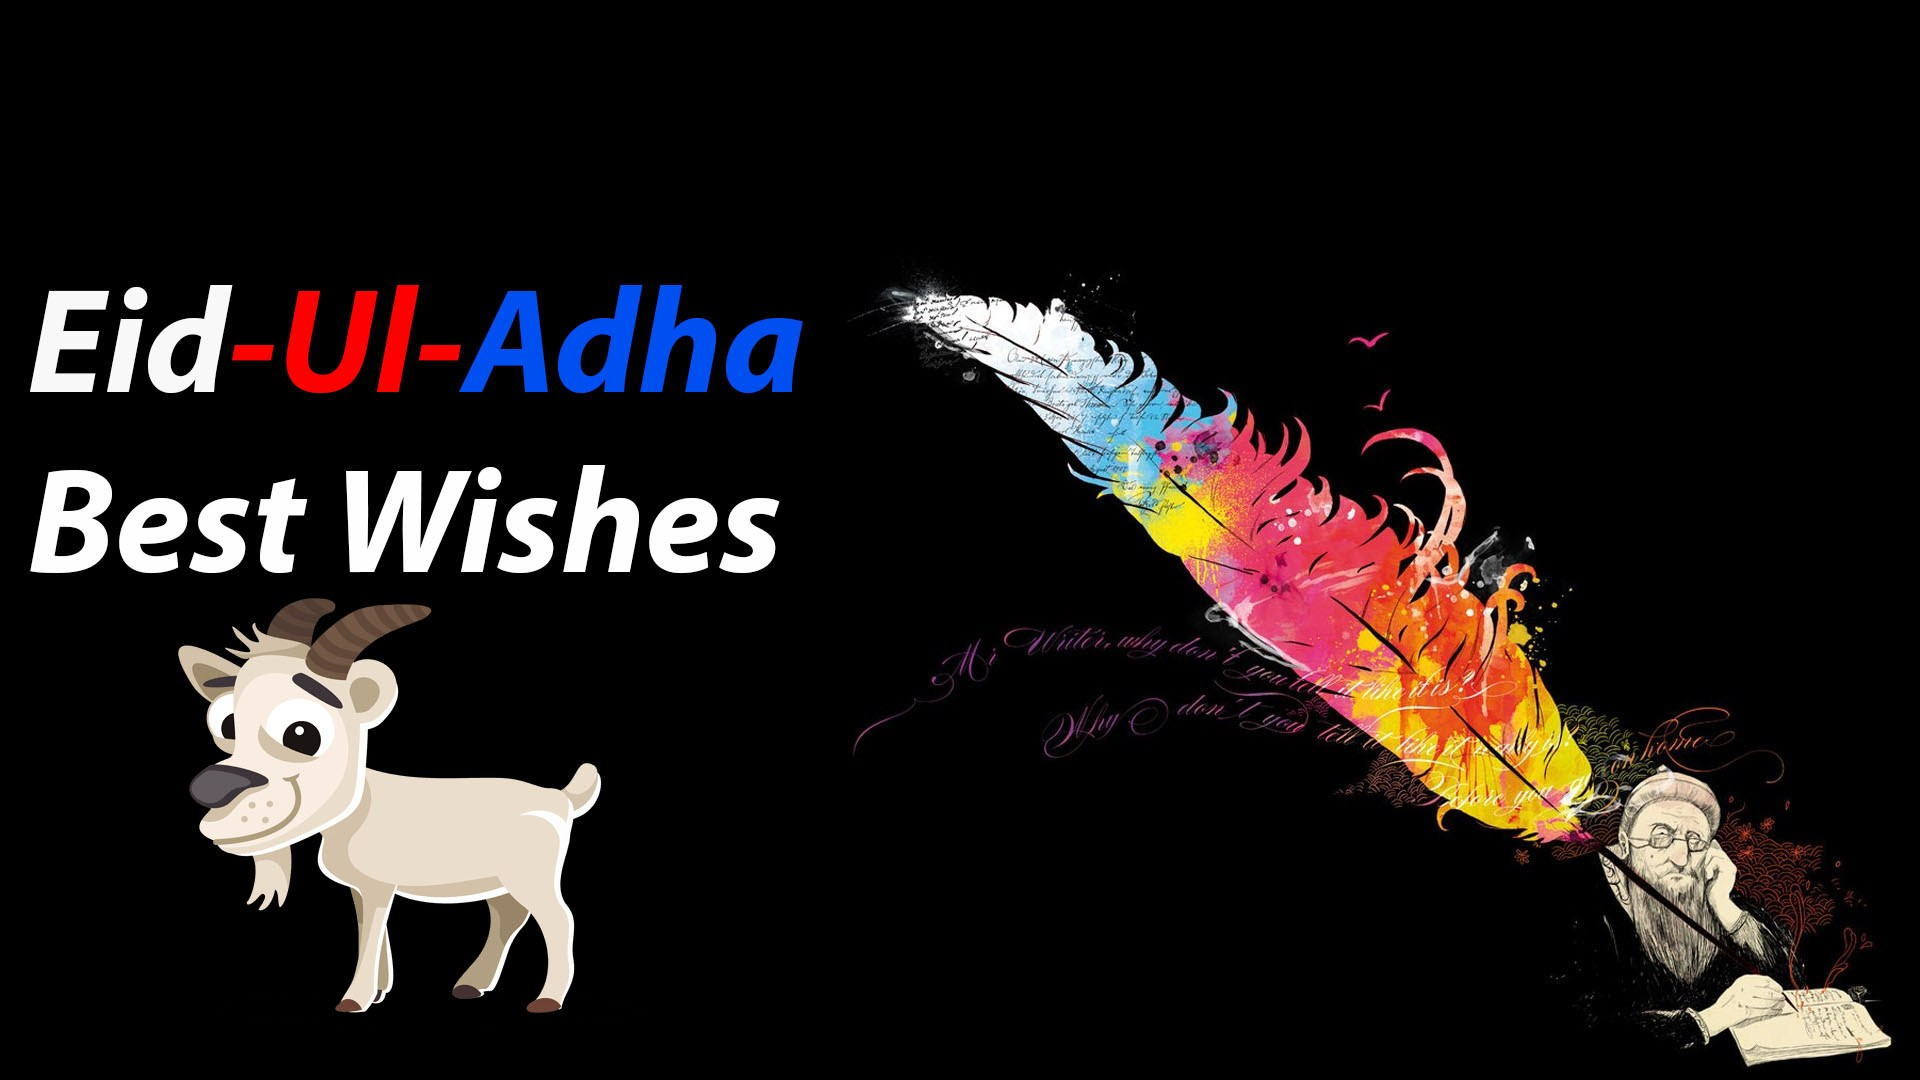 Eid Ul Adha Best Wishes For Family And Friends Images